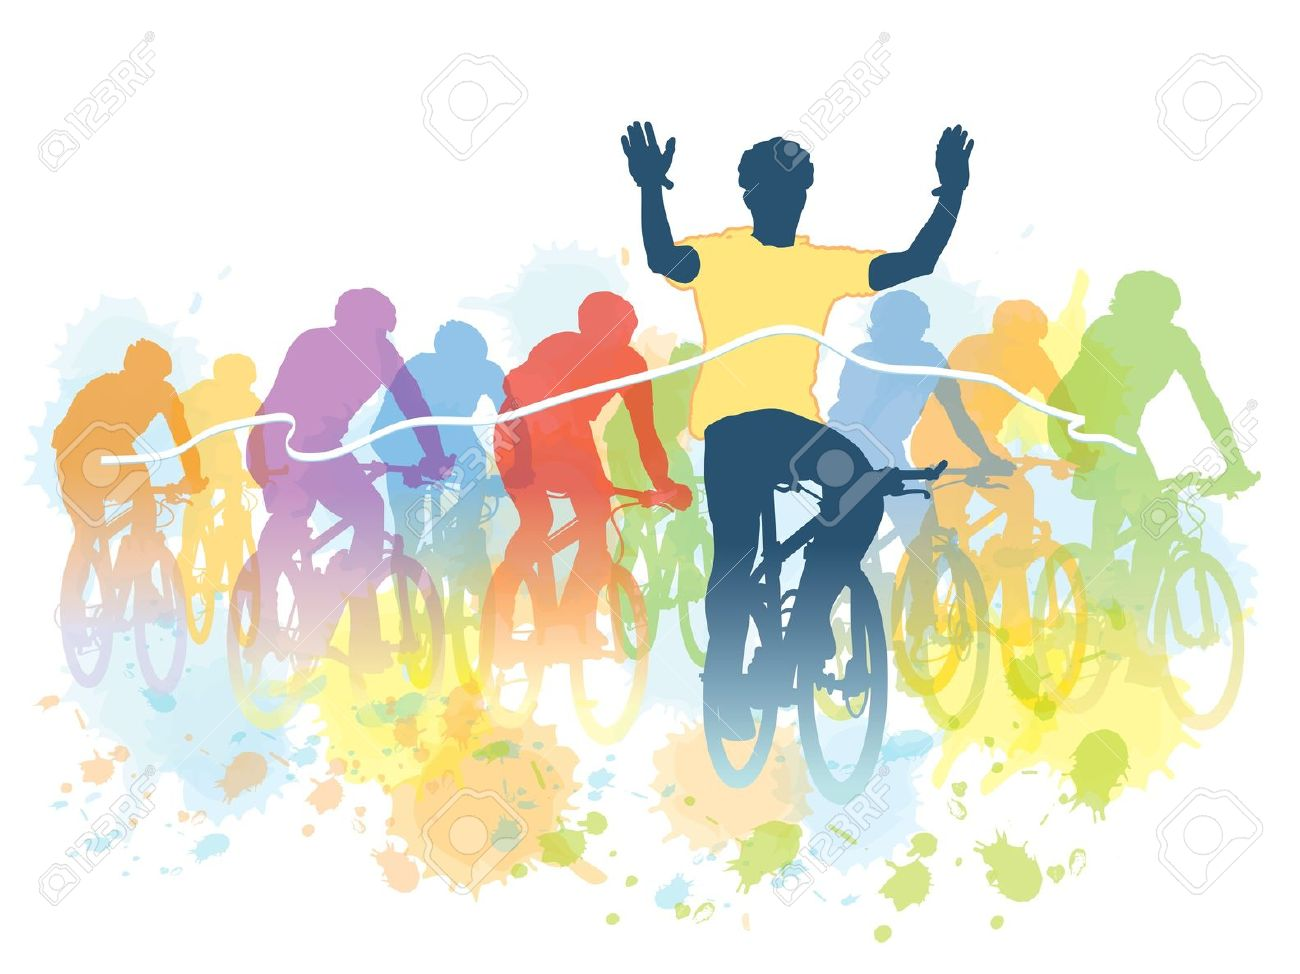 6,230 Cyclist Silhouette Stock Vector Illustration And Royalty.